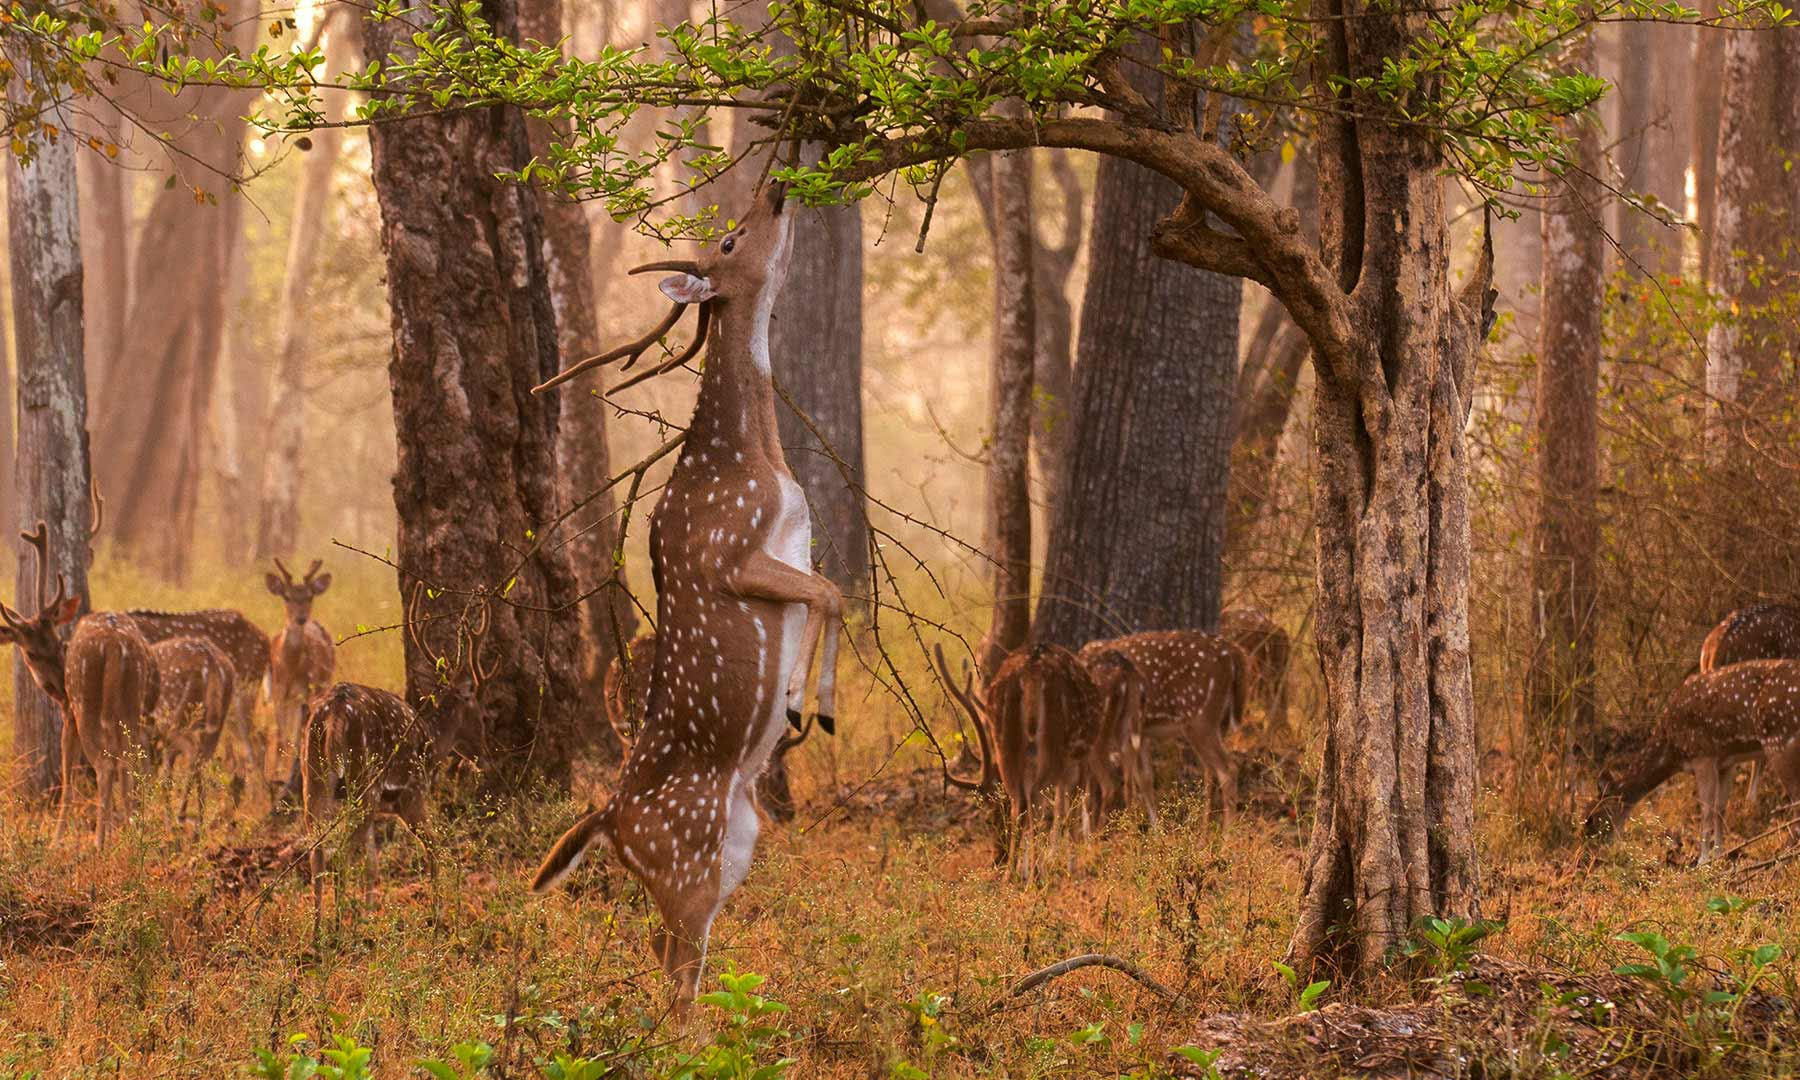 Pench National Park - Return to Nature